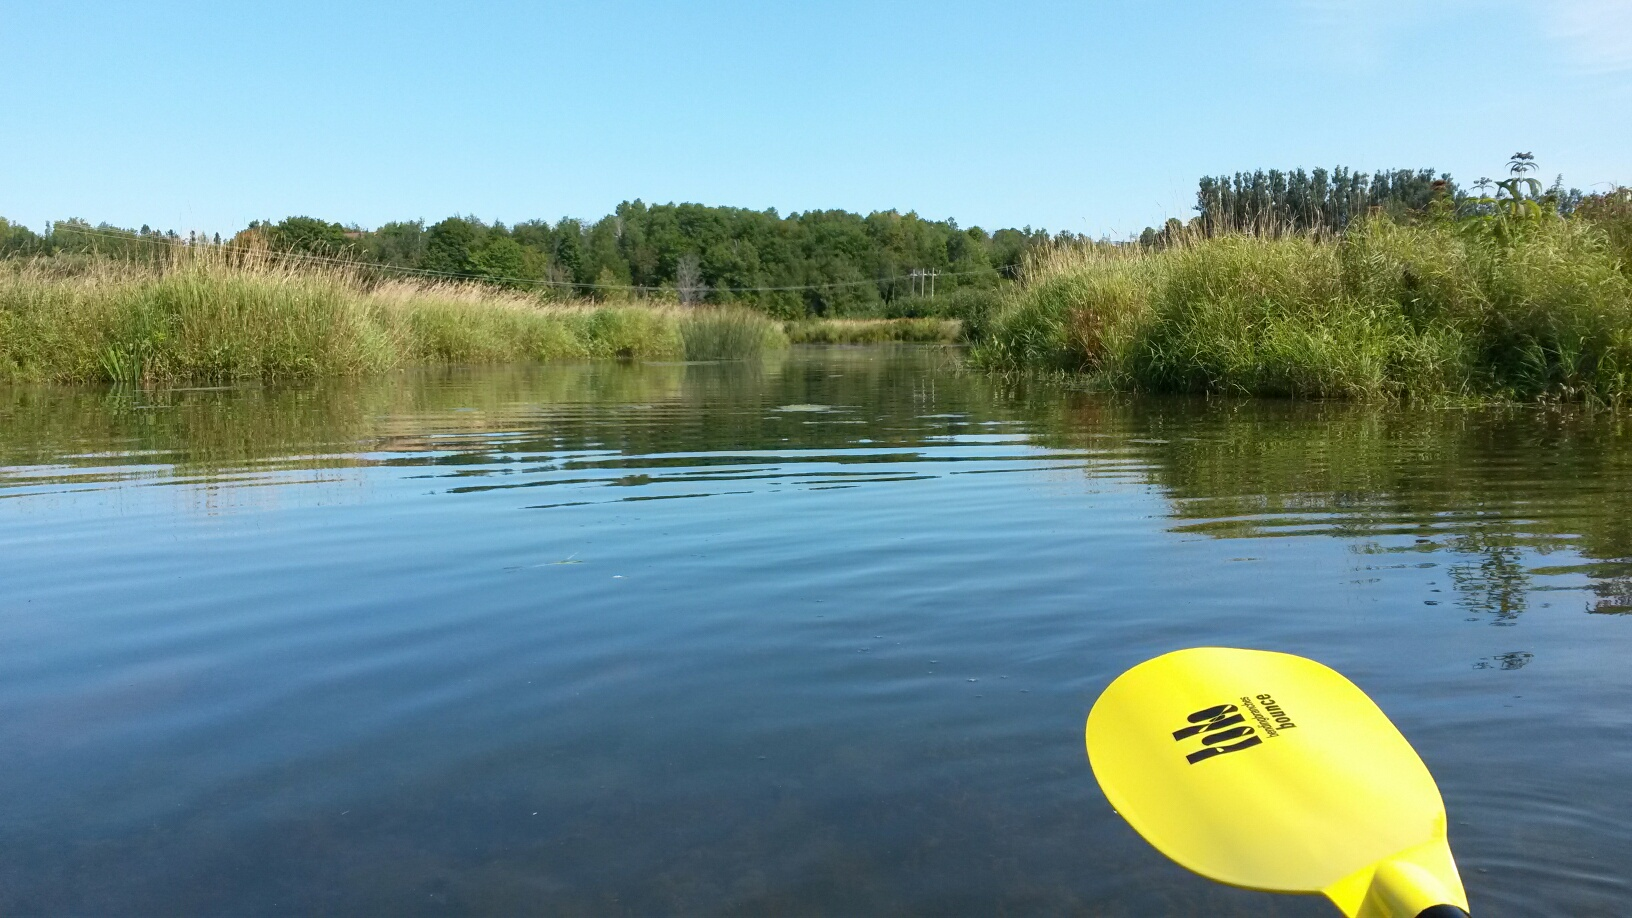 Paddling near the mouth of the Meduxnekeag River